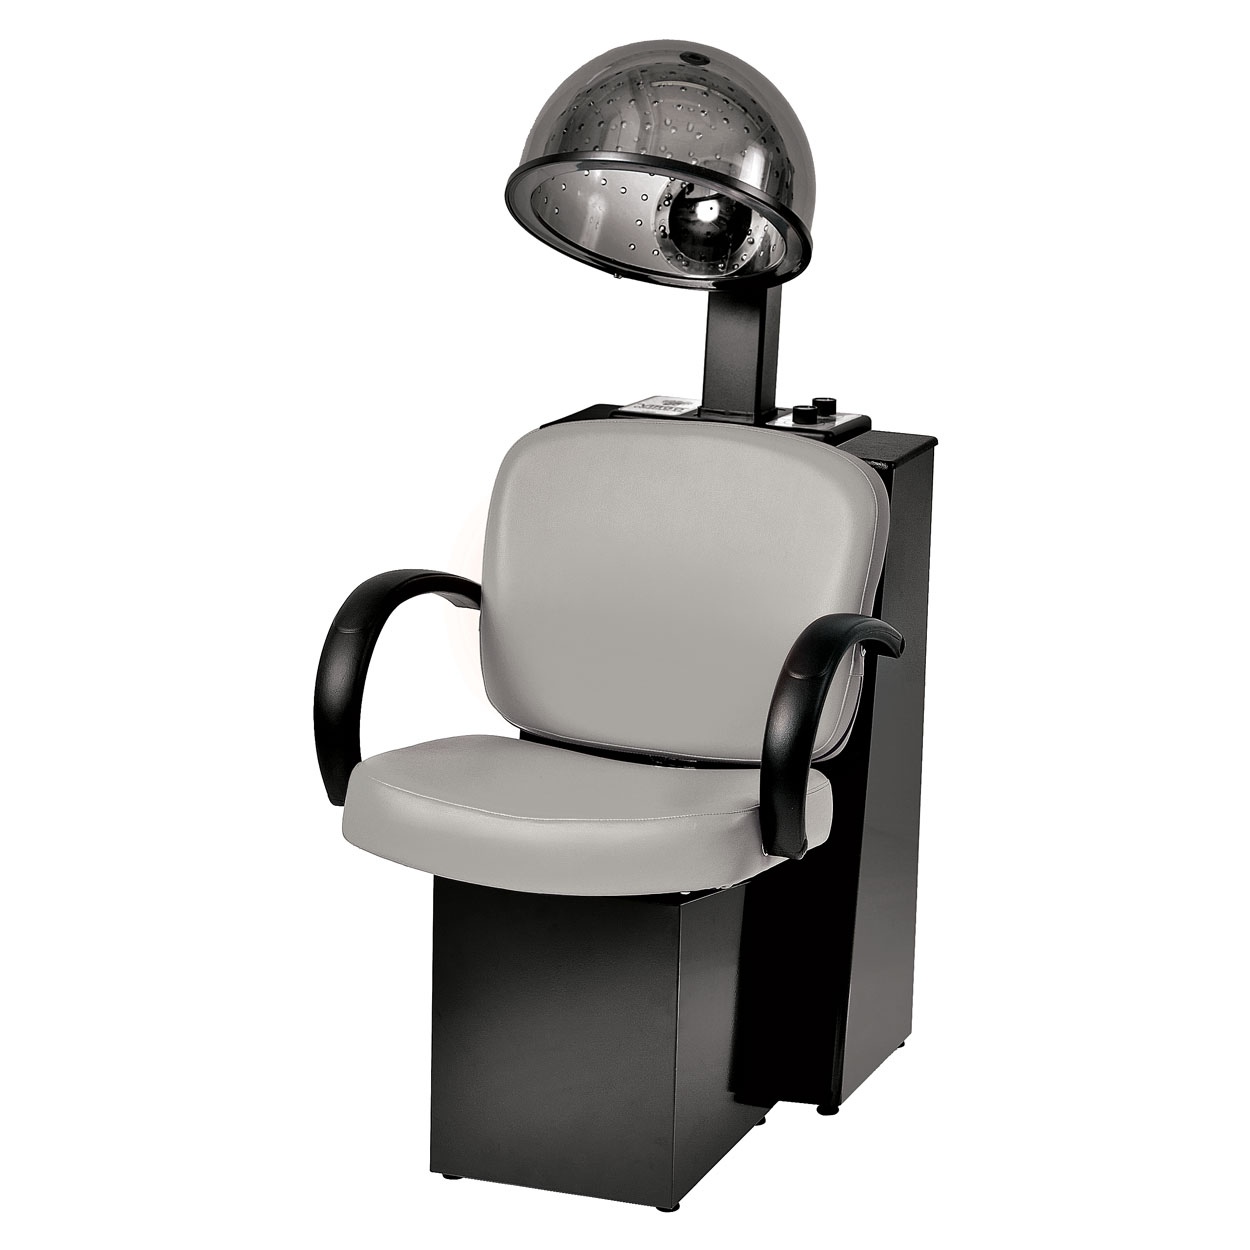 Pibbs 3669 Messina Salon Dryer Chair with Hooded Dryer  main product image